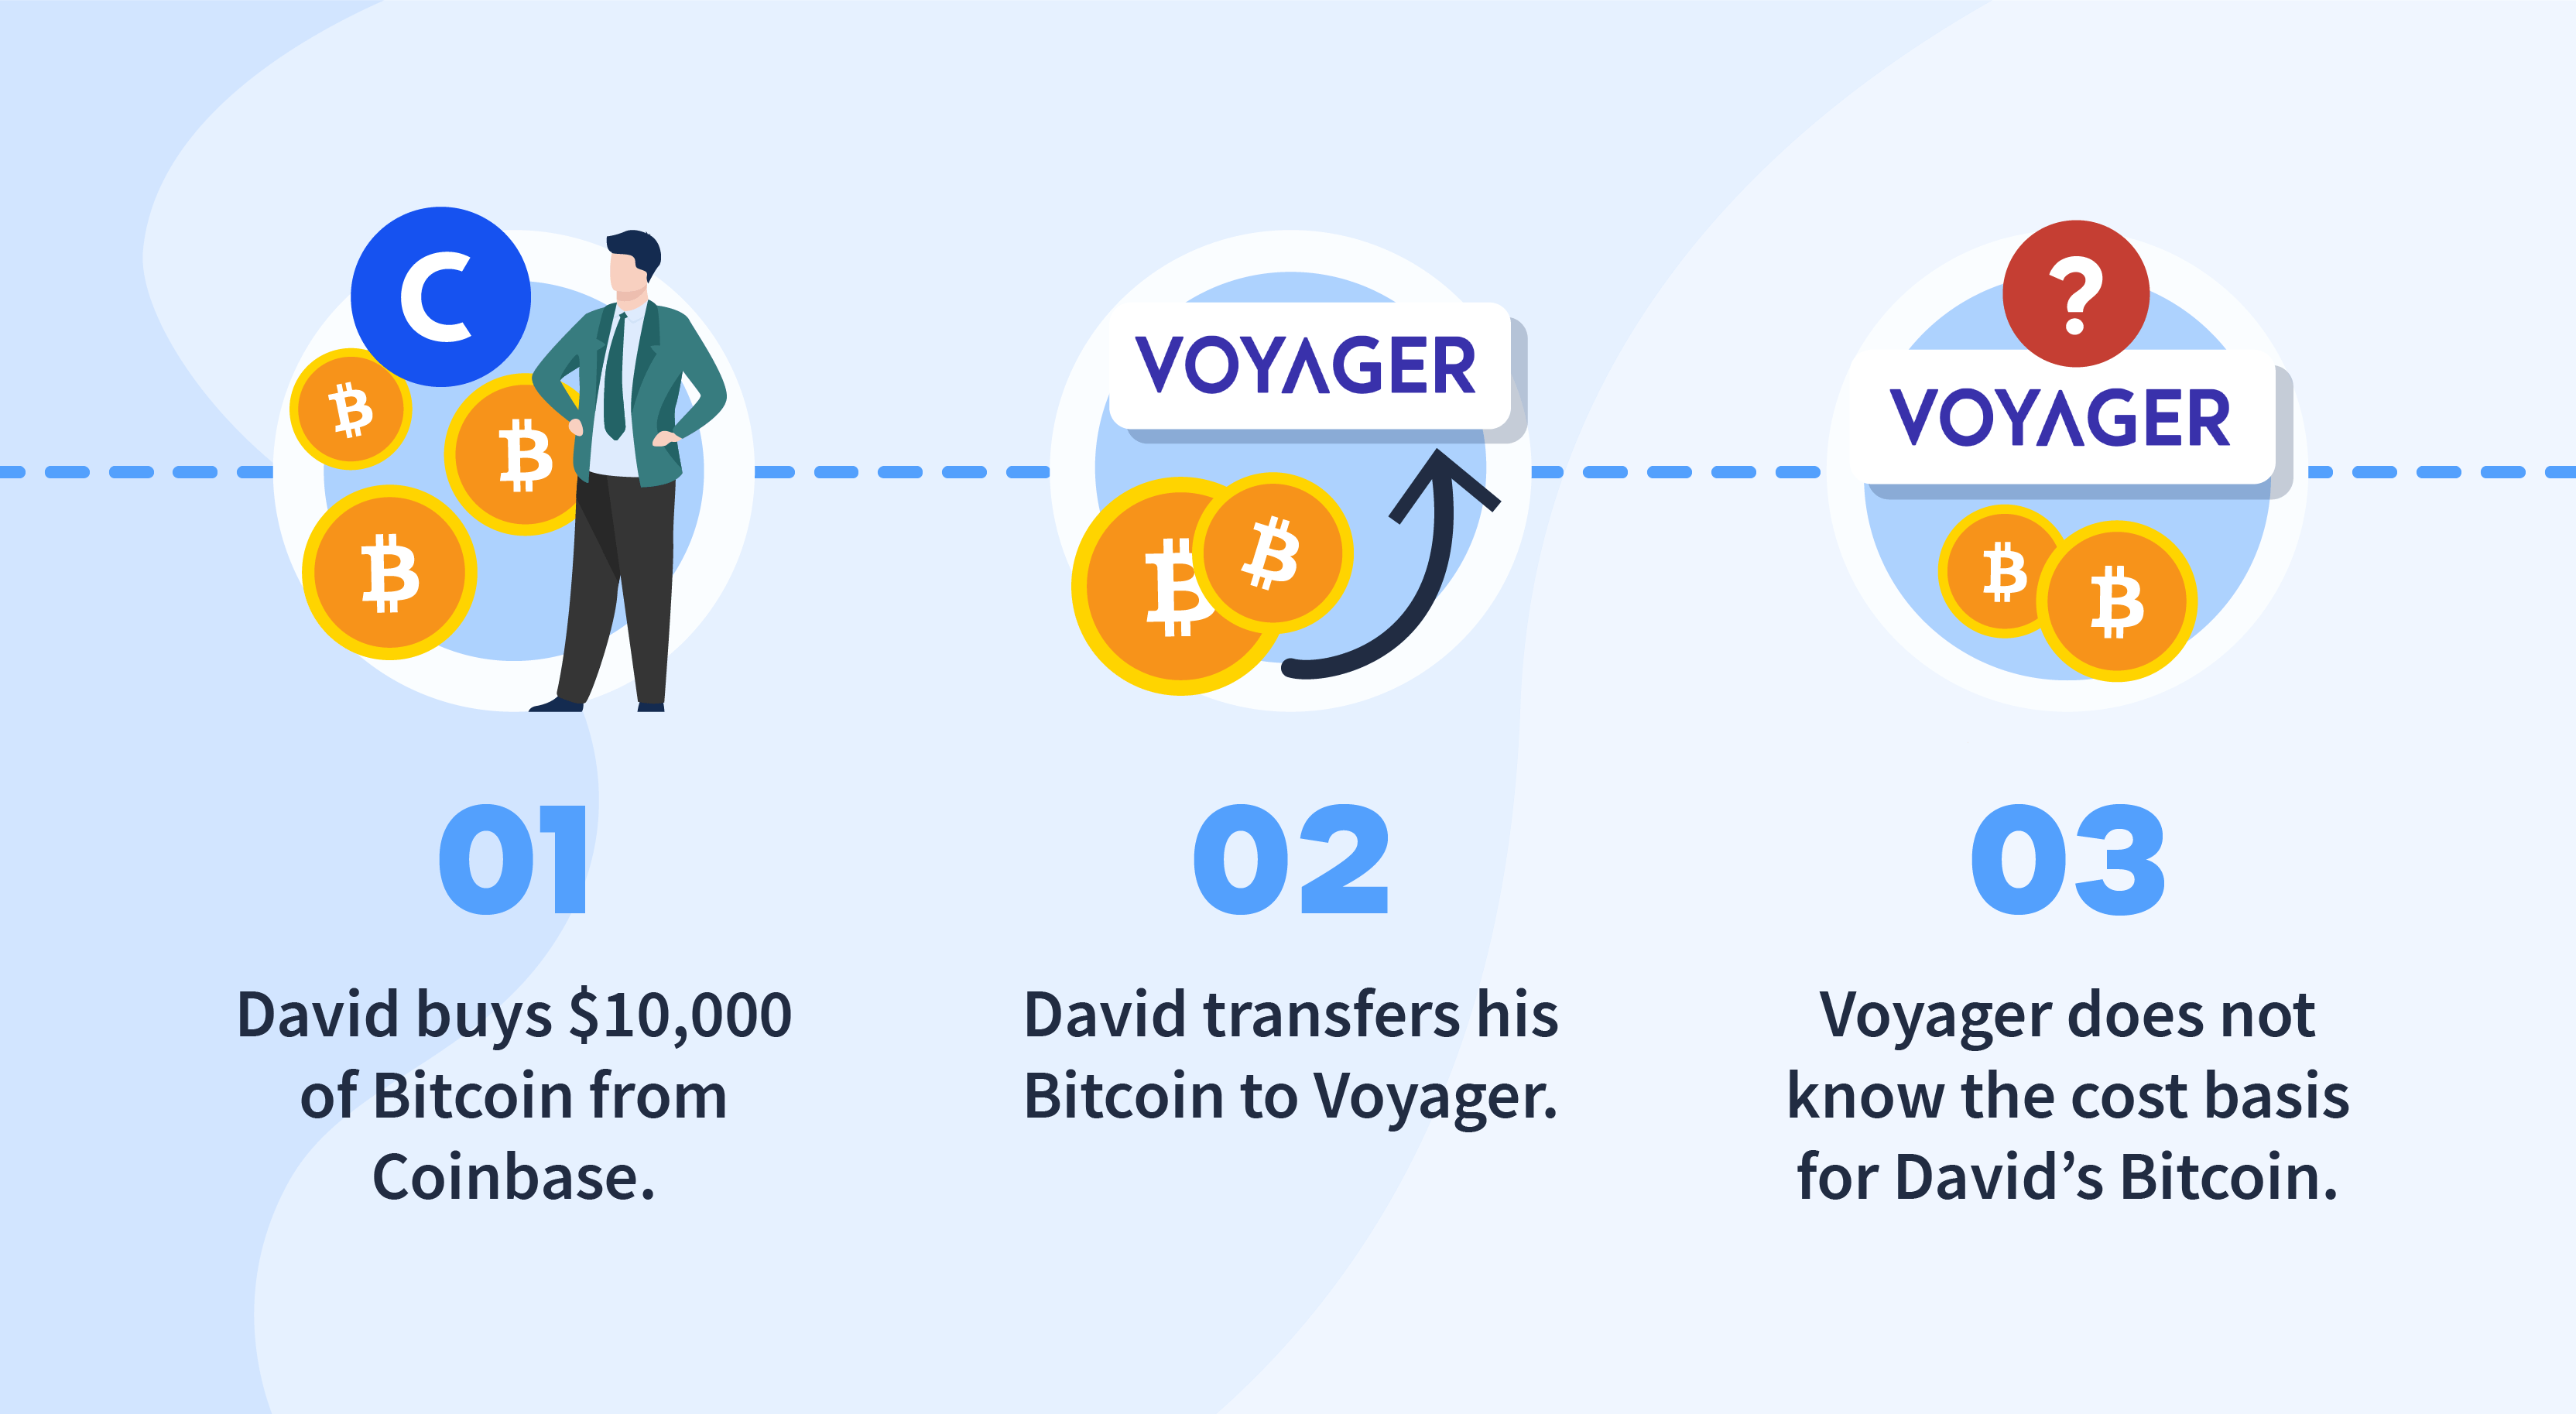 Voyager cryptocurrency taxes